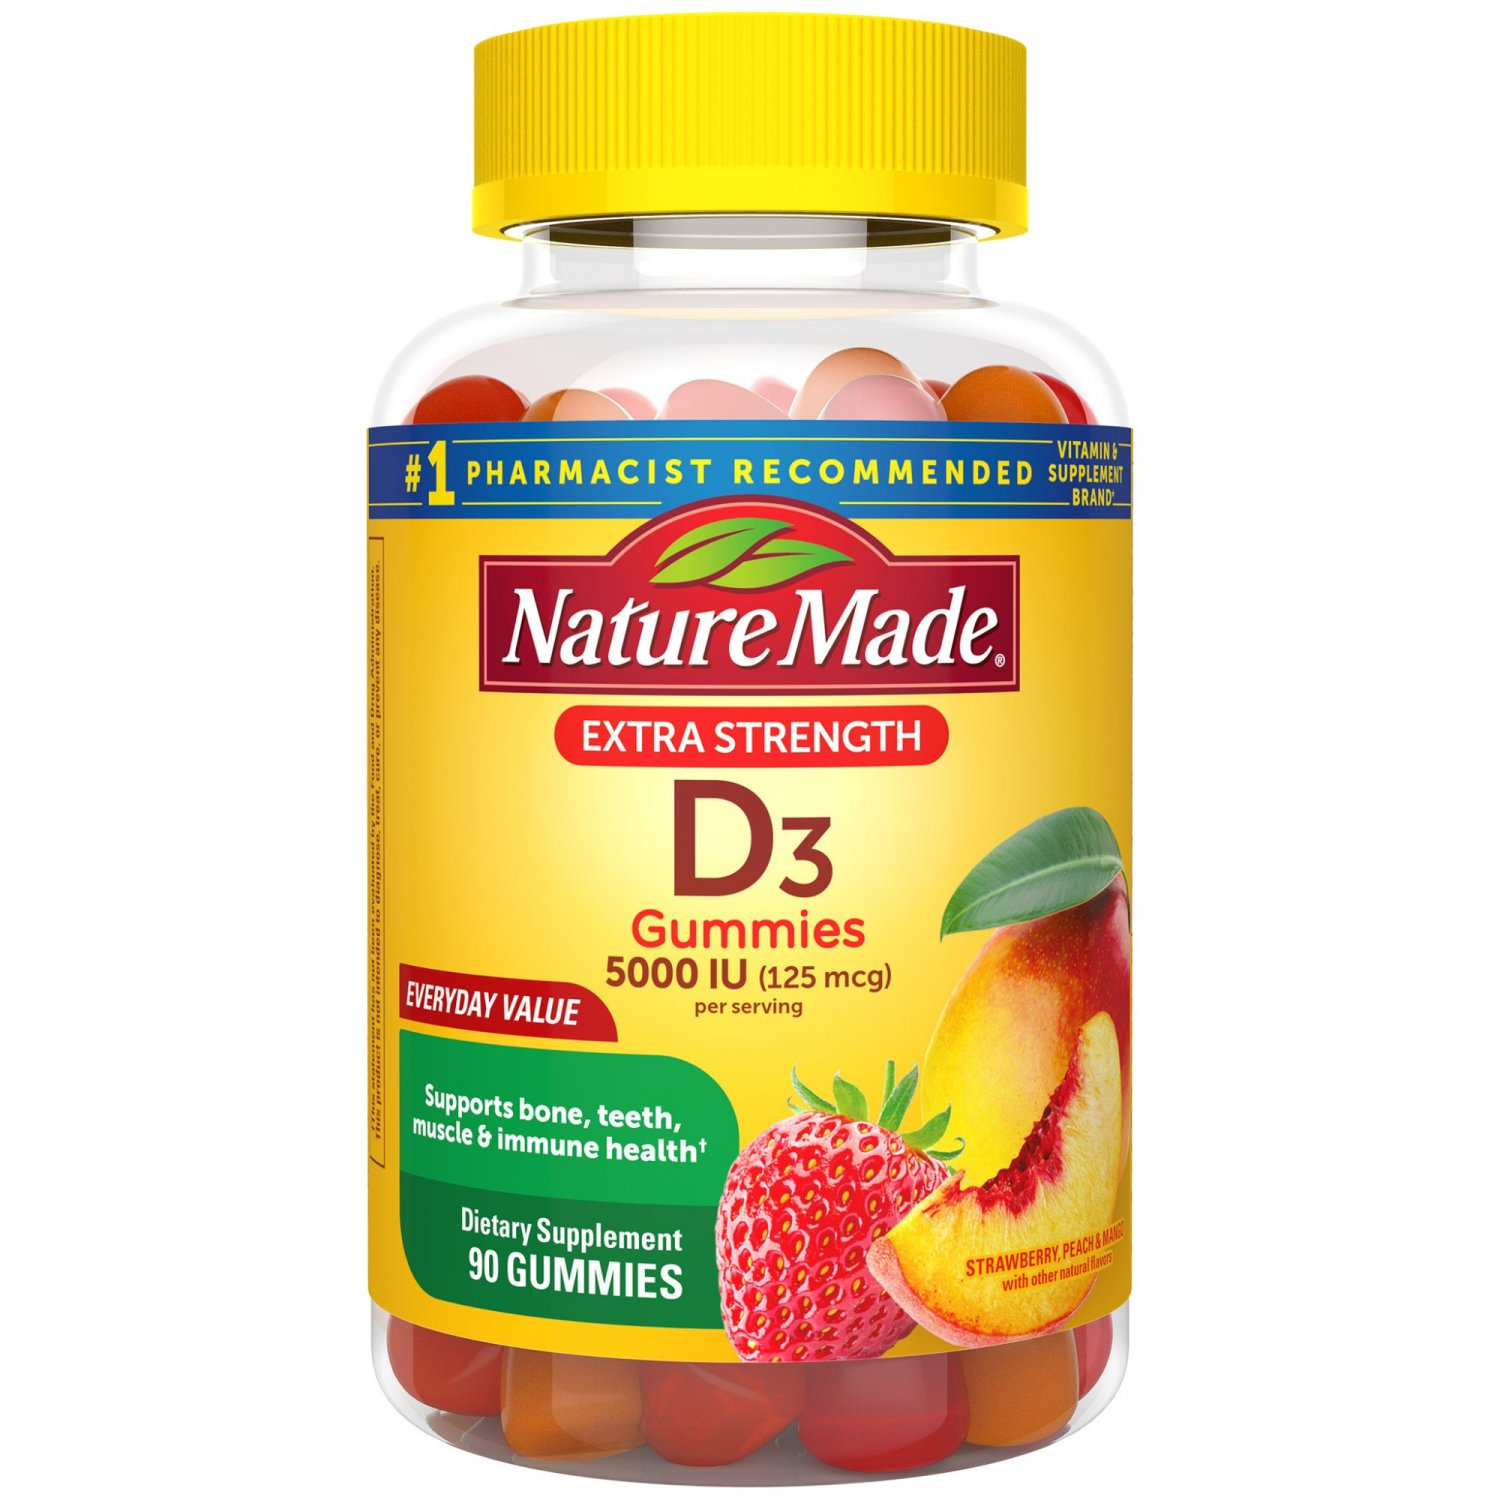 Nature Made Extra Strength Vitamin D3, 5000 IU (125 mcg) 90 Gummies